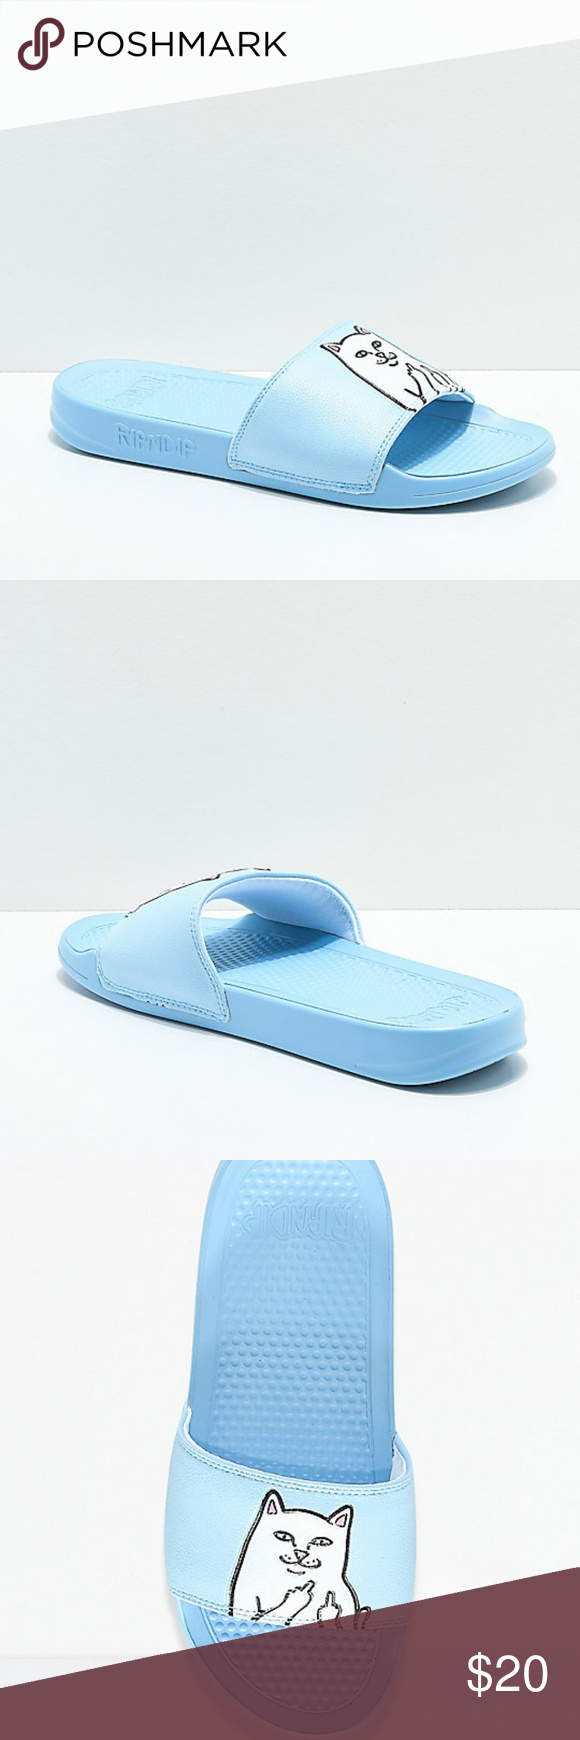 1d99451674ab RIPNDIP Lord Nermal Light Blue Slide Sandals Men s New RIPNDIP Lord Nermal  Light Blue Slide Sandals